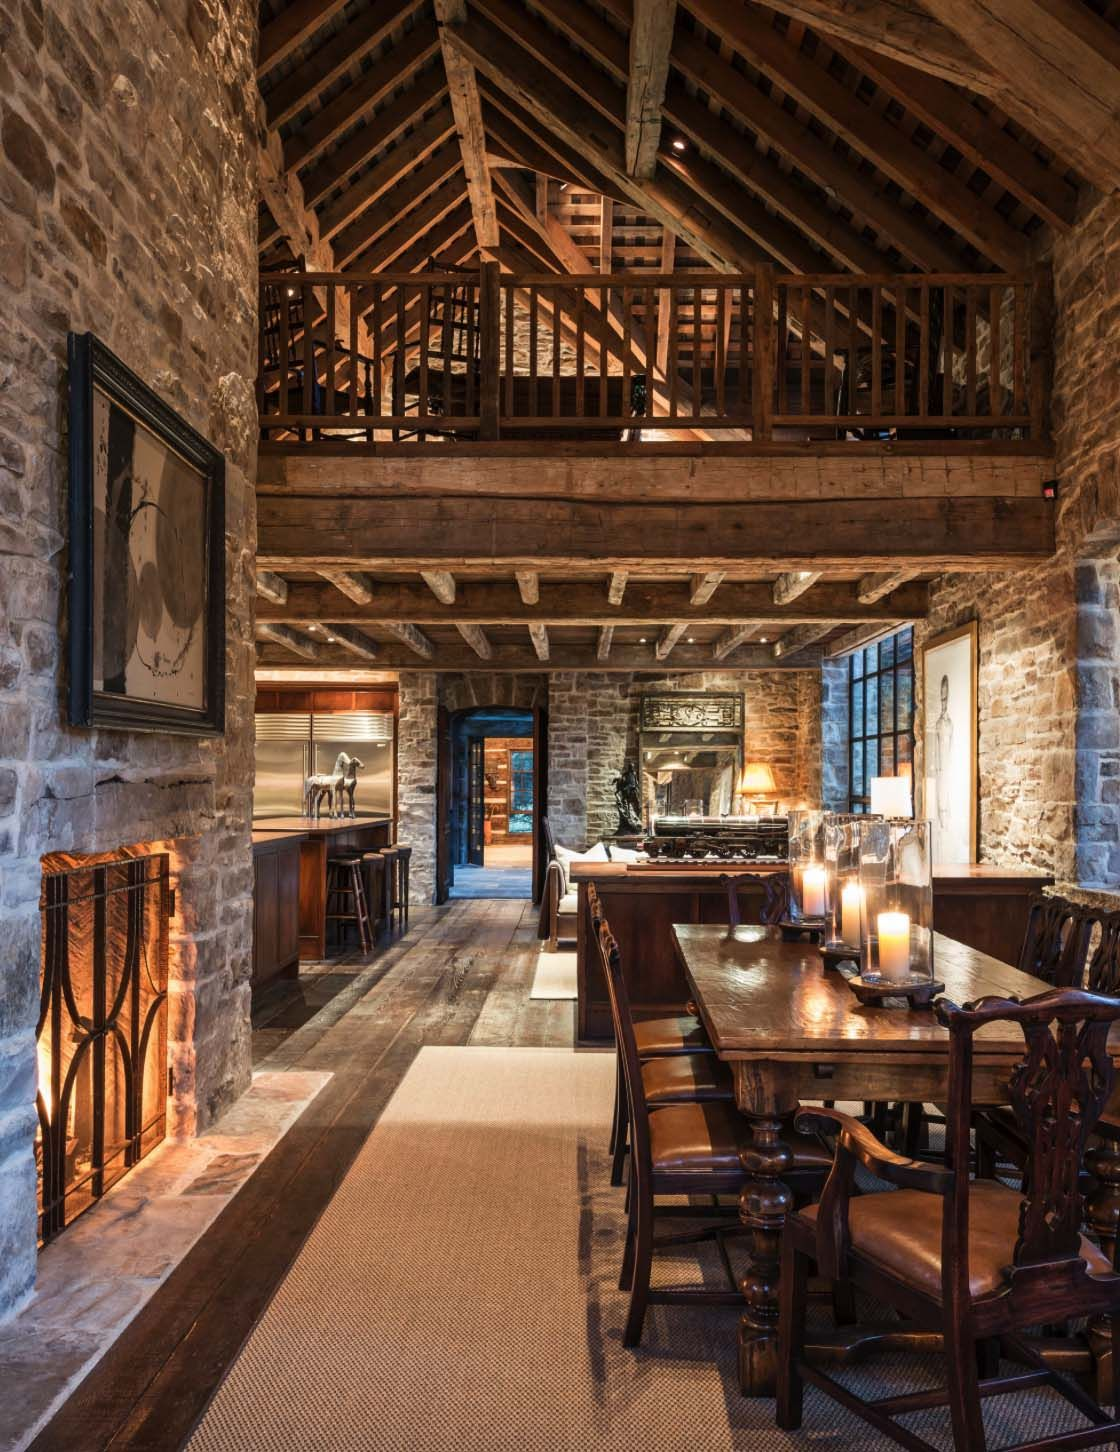 Rustic stone and timber dwelling overlooking the Grand Tetons